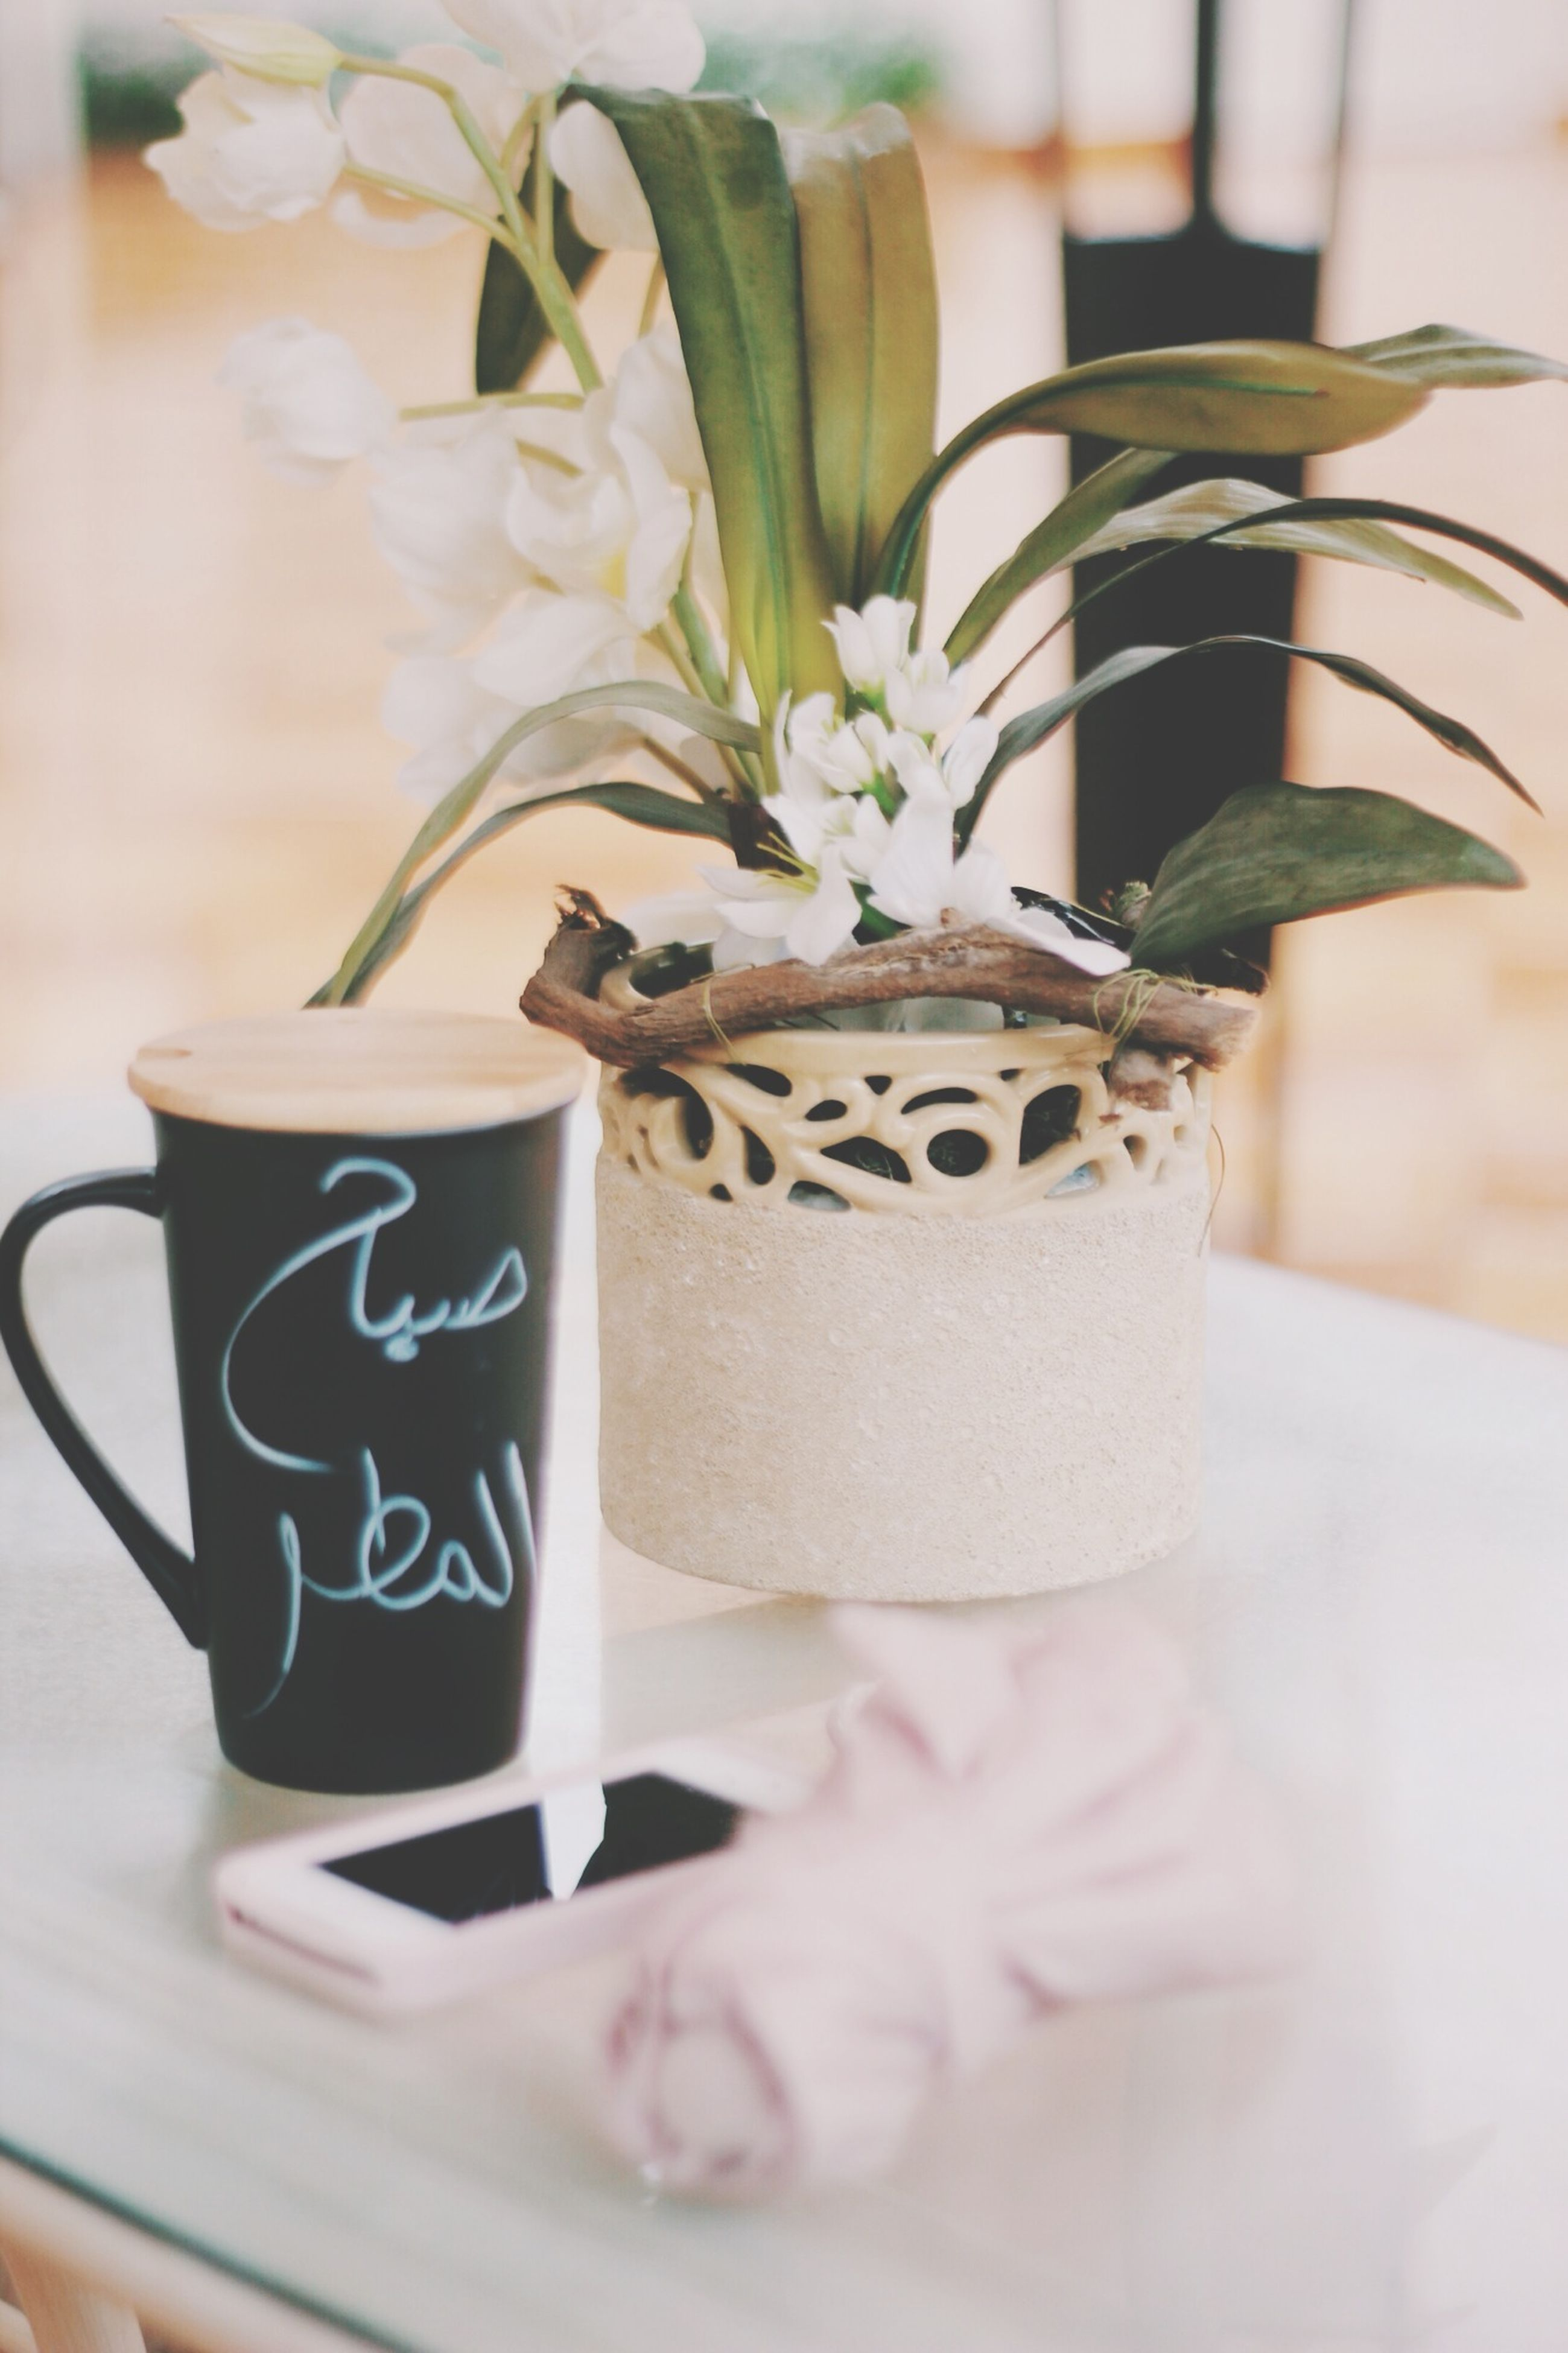 indoors, table, text, close-up, freshness, still life, western script, focus on foreground, food and drink, communication, flower, selective focus, creativity, vase, art, decoration, drink, art and craft, no people, human representation